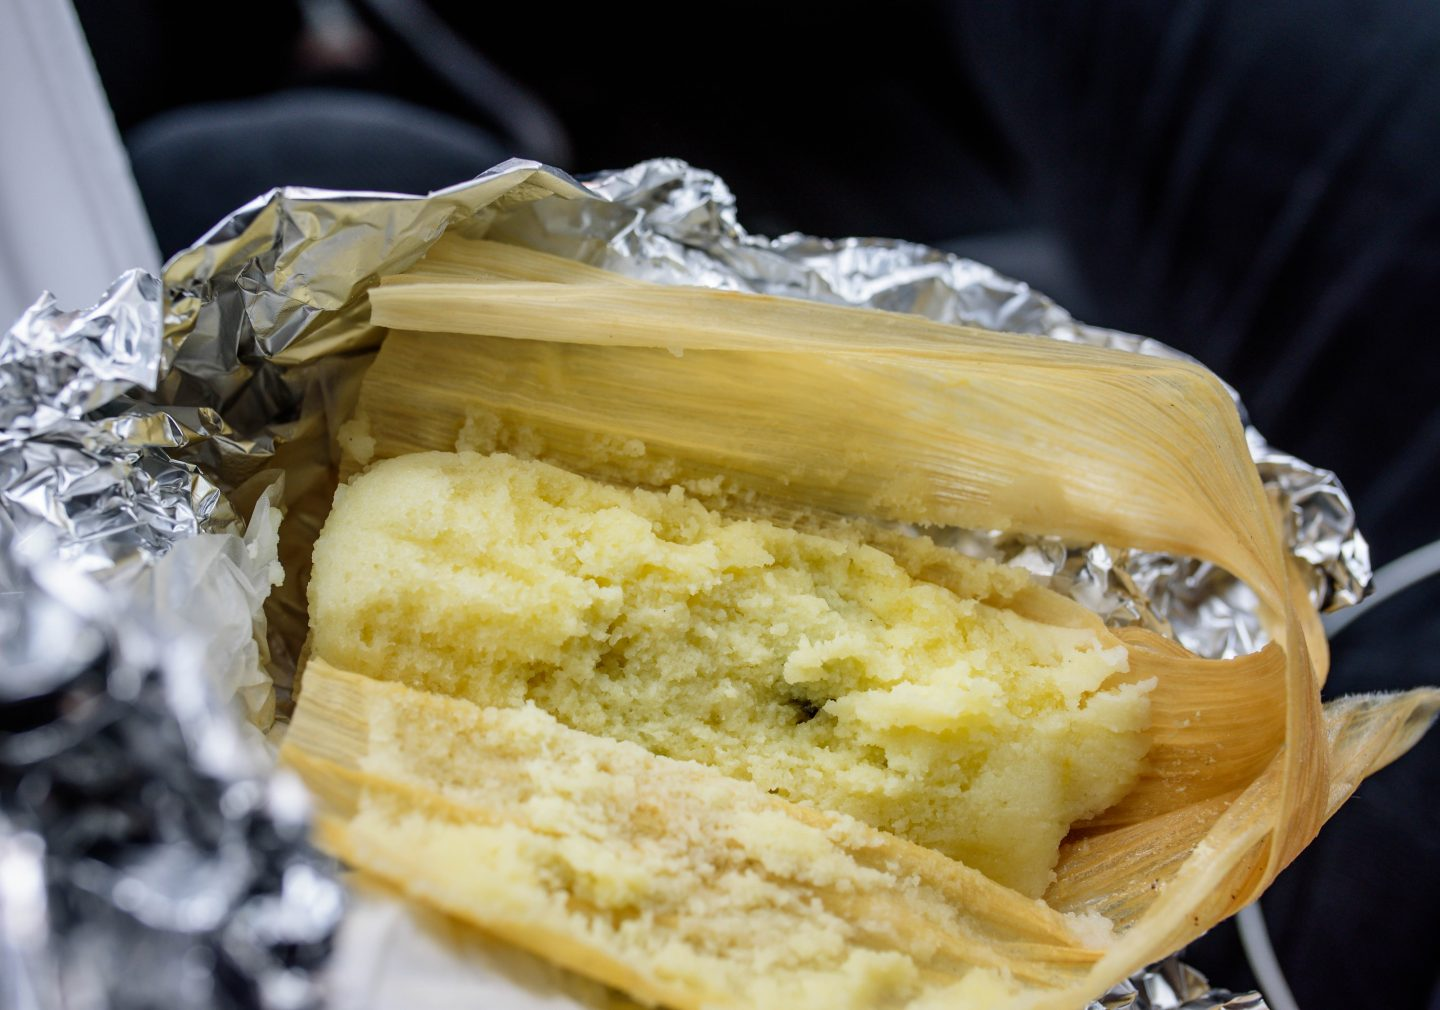 South Philly Barbacoa sweet tamale